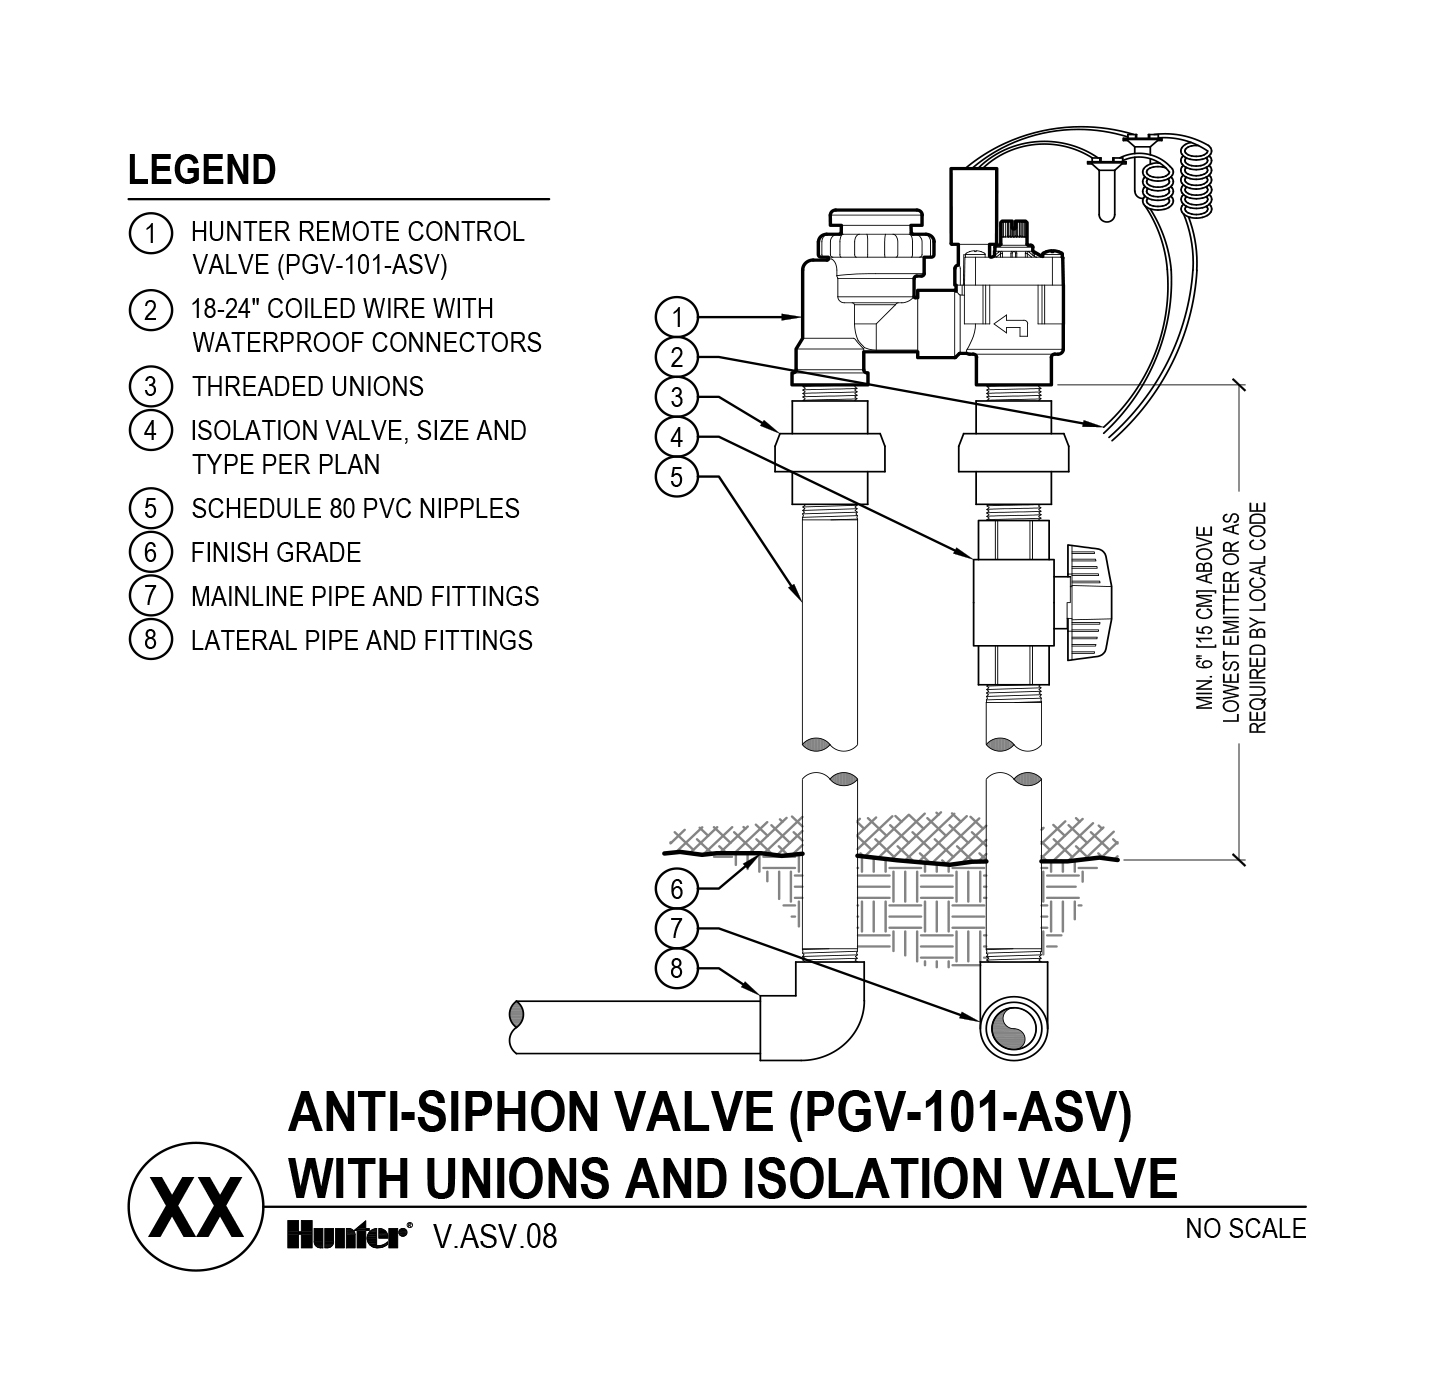 CAD - PGV-101-ASV with unions and shutoff valves